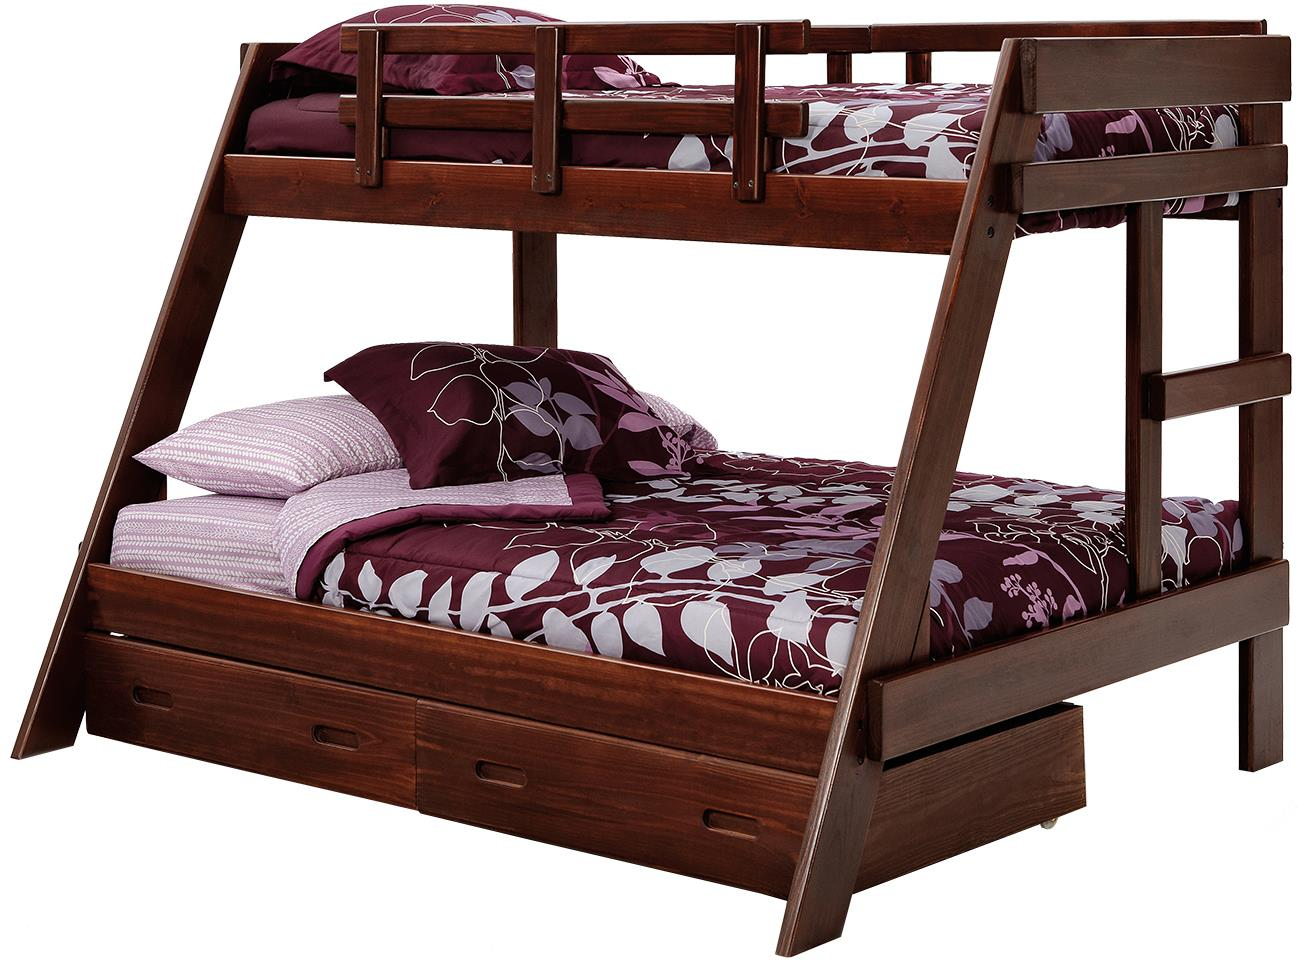 woodcrest heartland twin/full size bunk bed with storage - prime